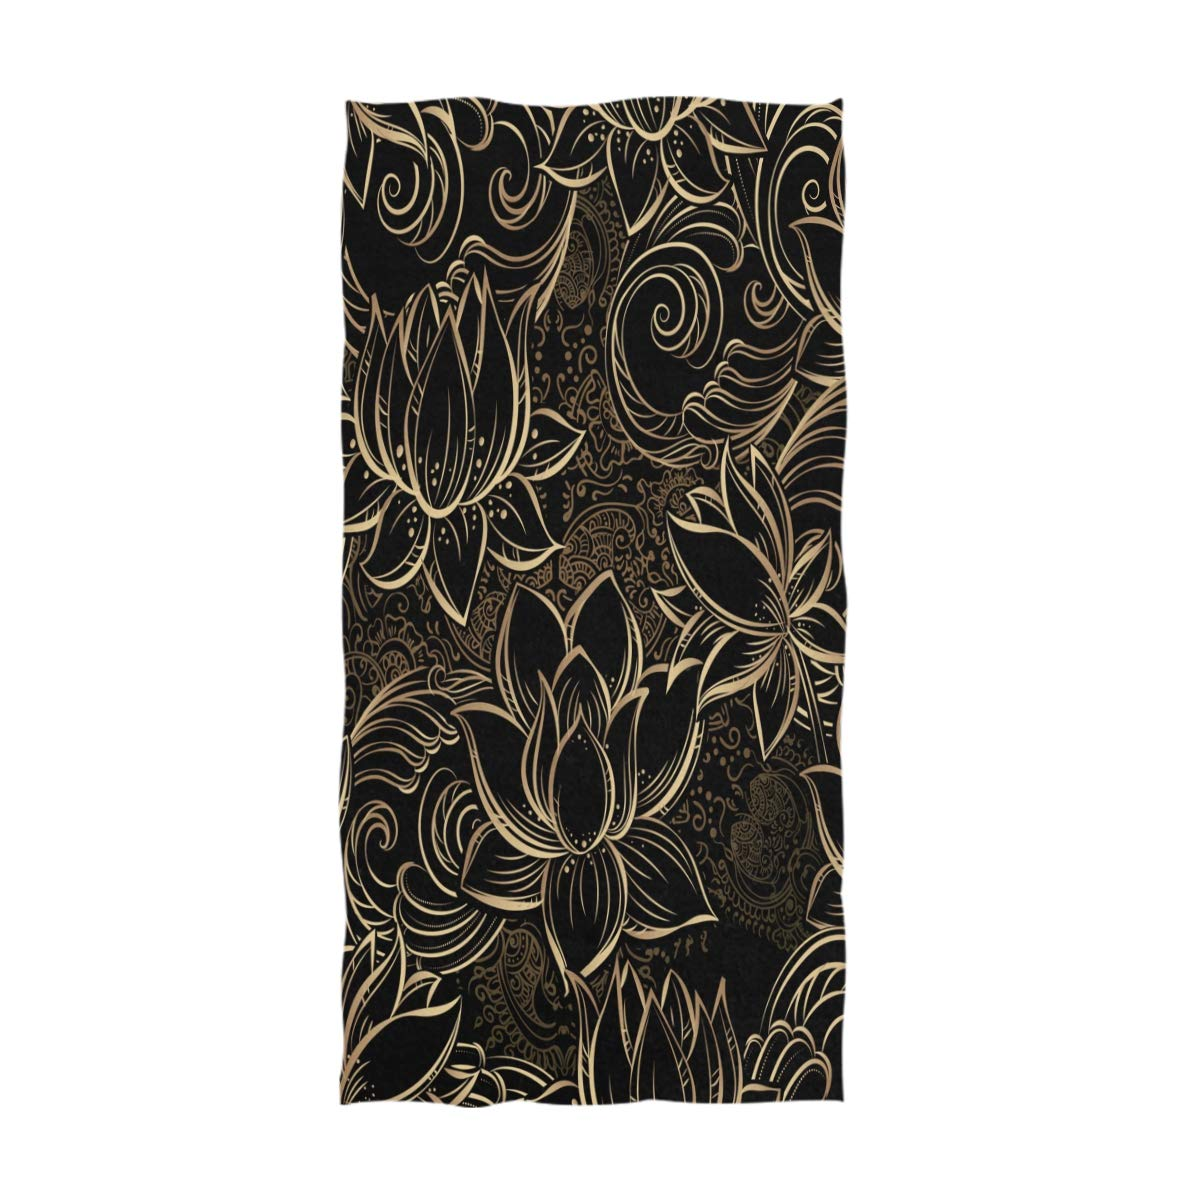 Hotel 16 x 30 Inches Naanle Mardi Gras Fleur De Lis Pattern Soft Highly Absorbent Guest Large Home Decorative Hand Towels Multipurpose for Bathroom Gym and Spa